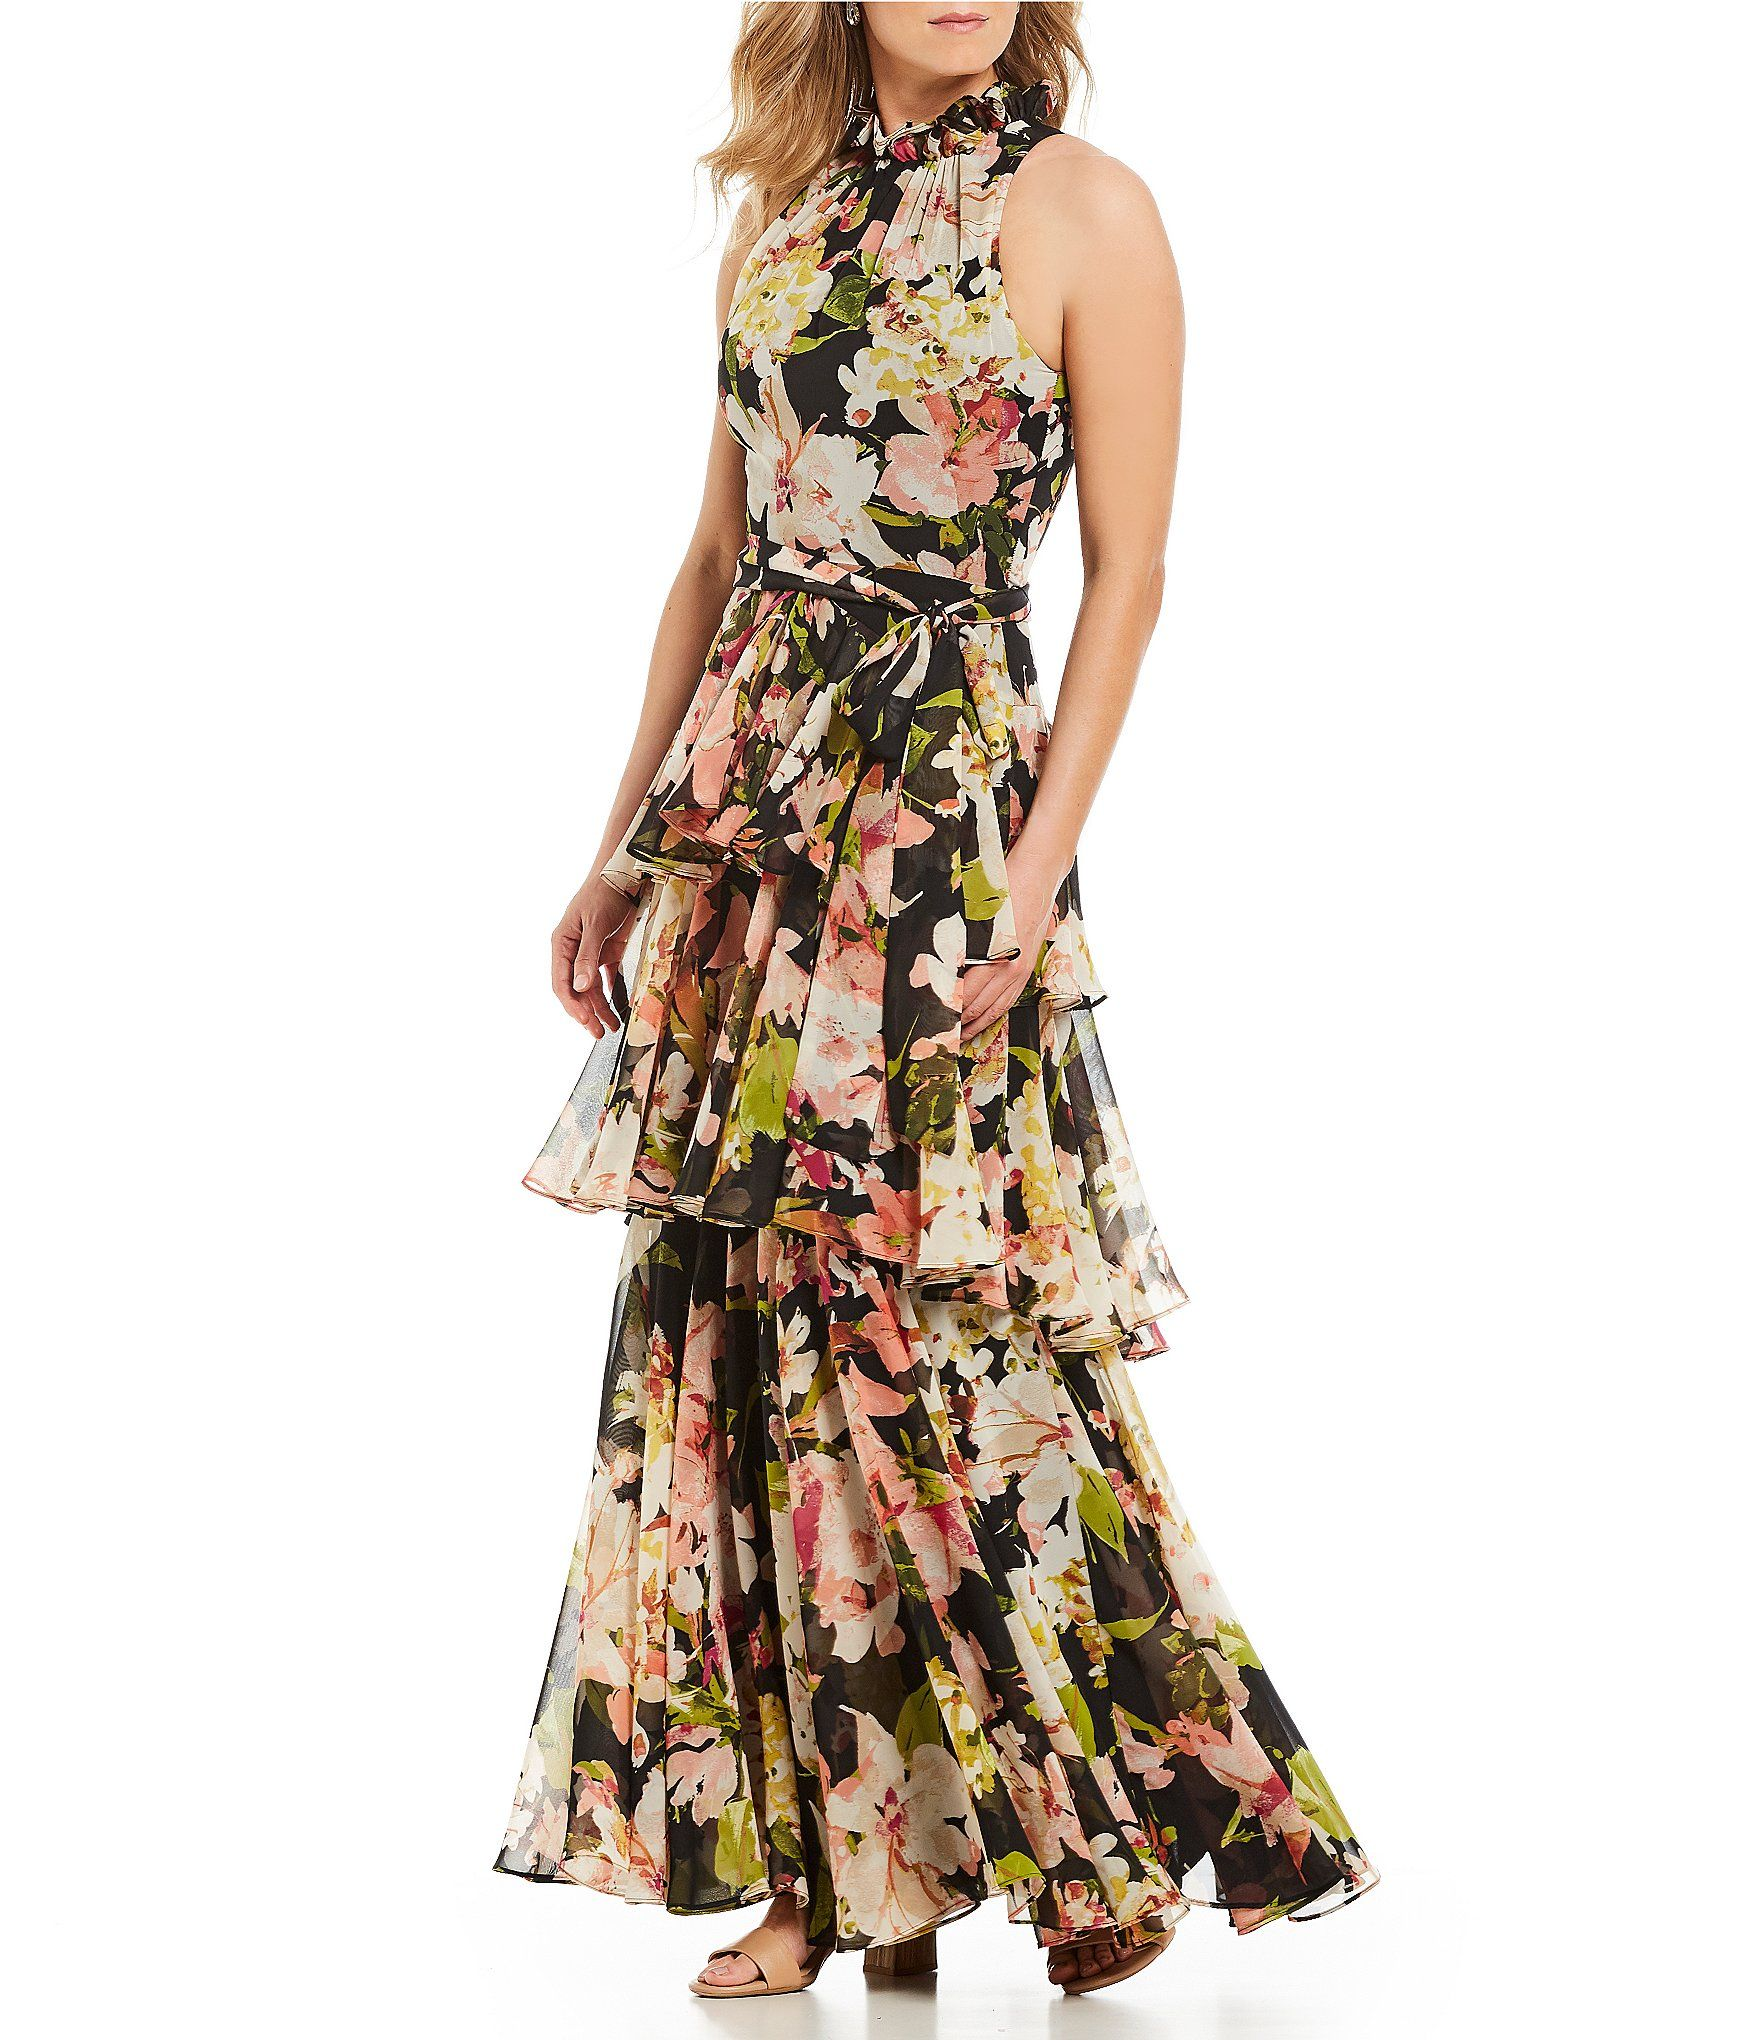 Shop For Alex Marie Brooke Halter Neck Ruffle Tiered Floral Print Gown At Dillards Com Visit Dill Floral Print Gowns Women Wedding Guest Dresses Printed Gowns [ 2040 x 1760 Pixel ]